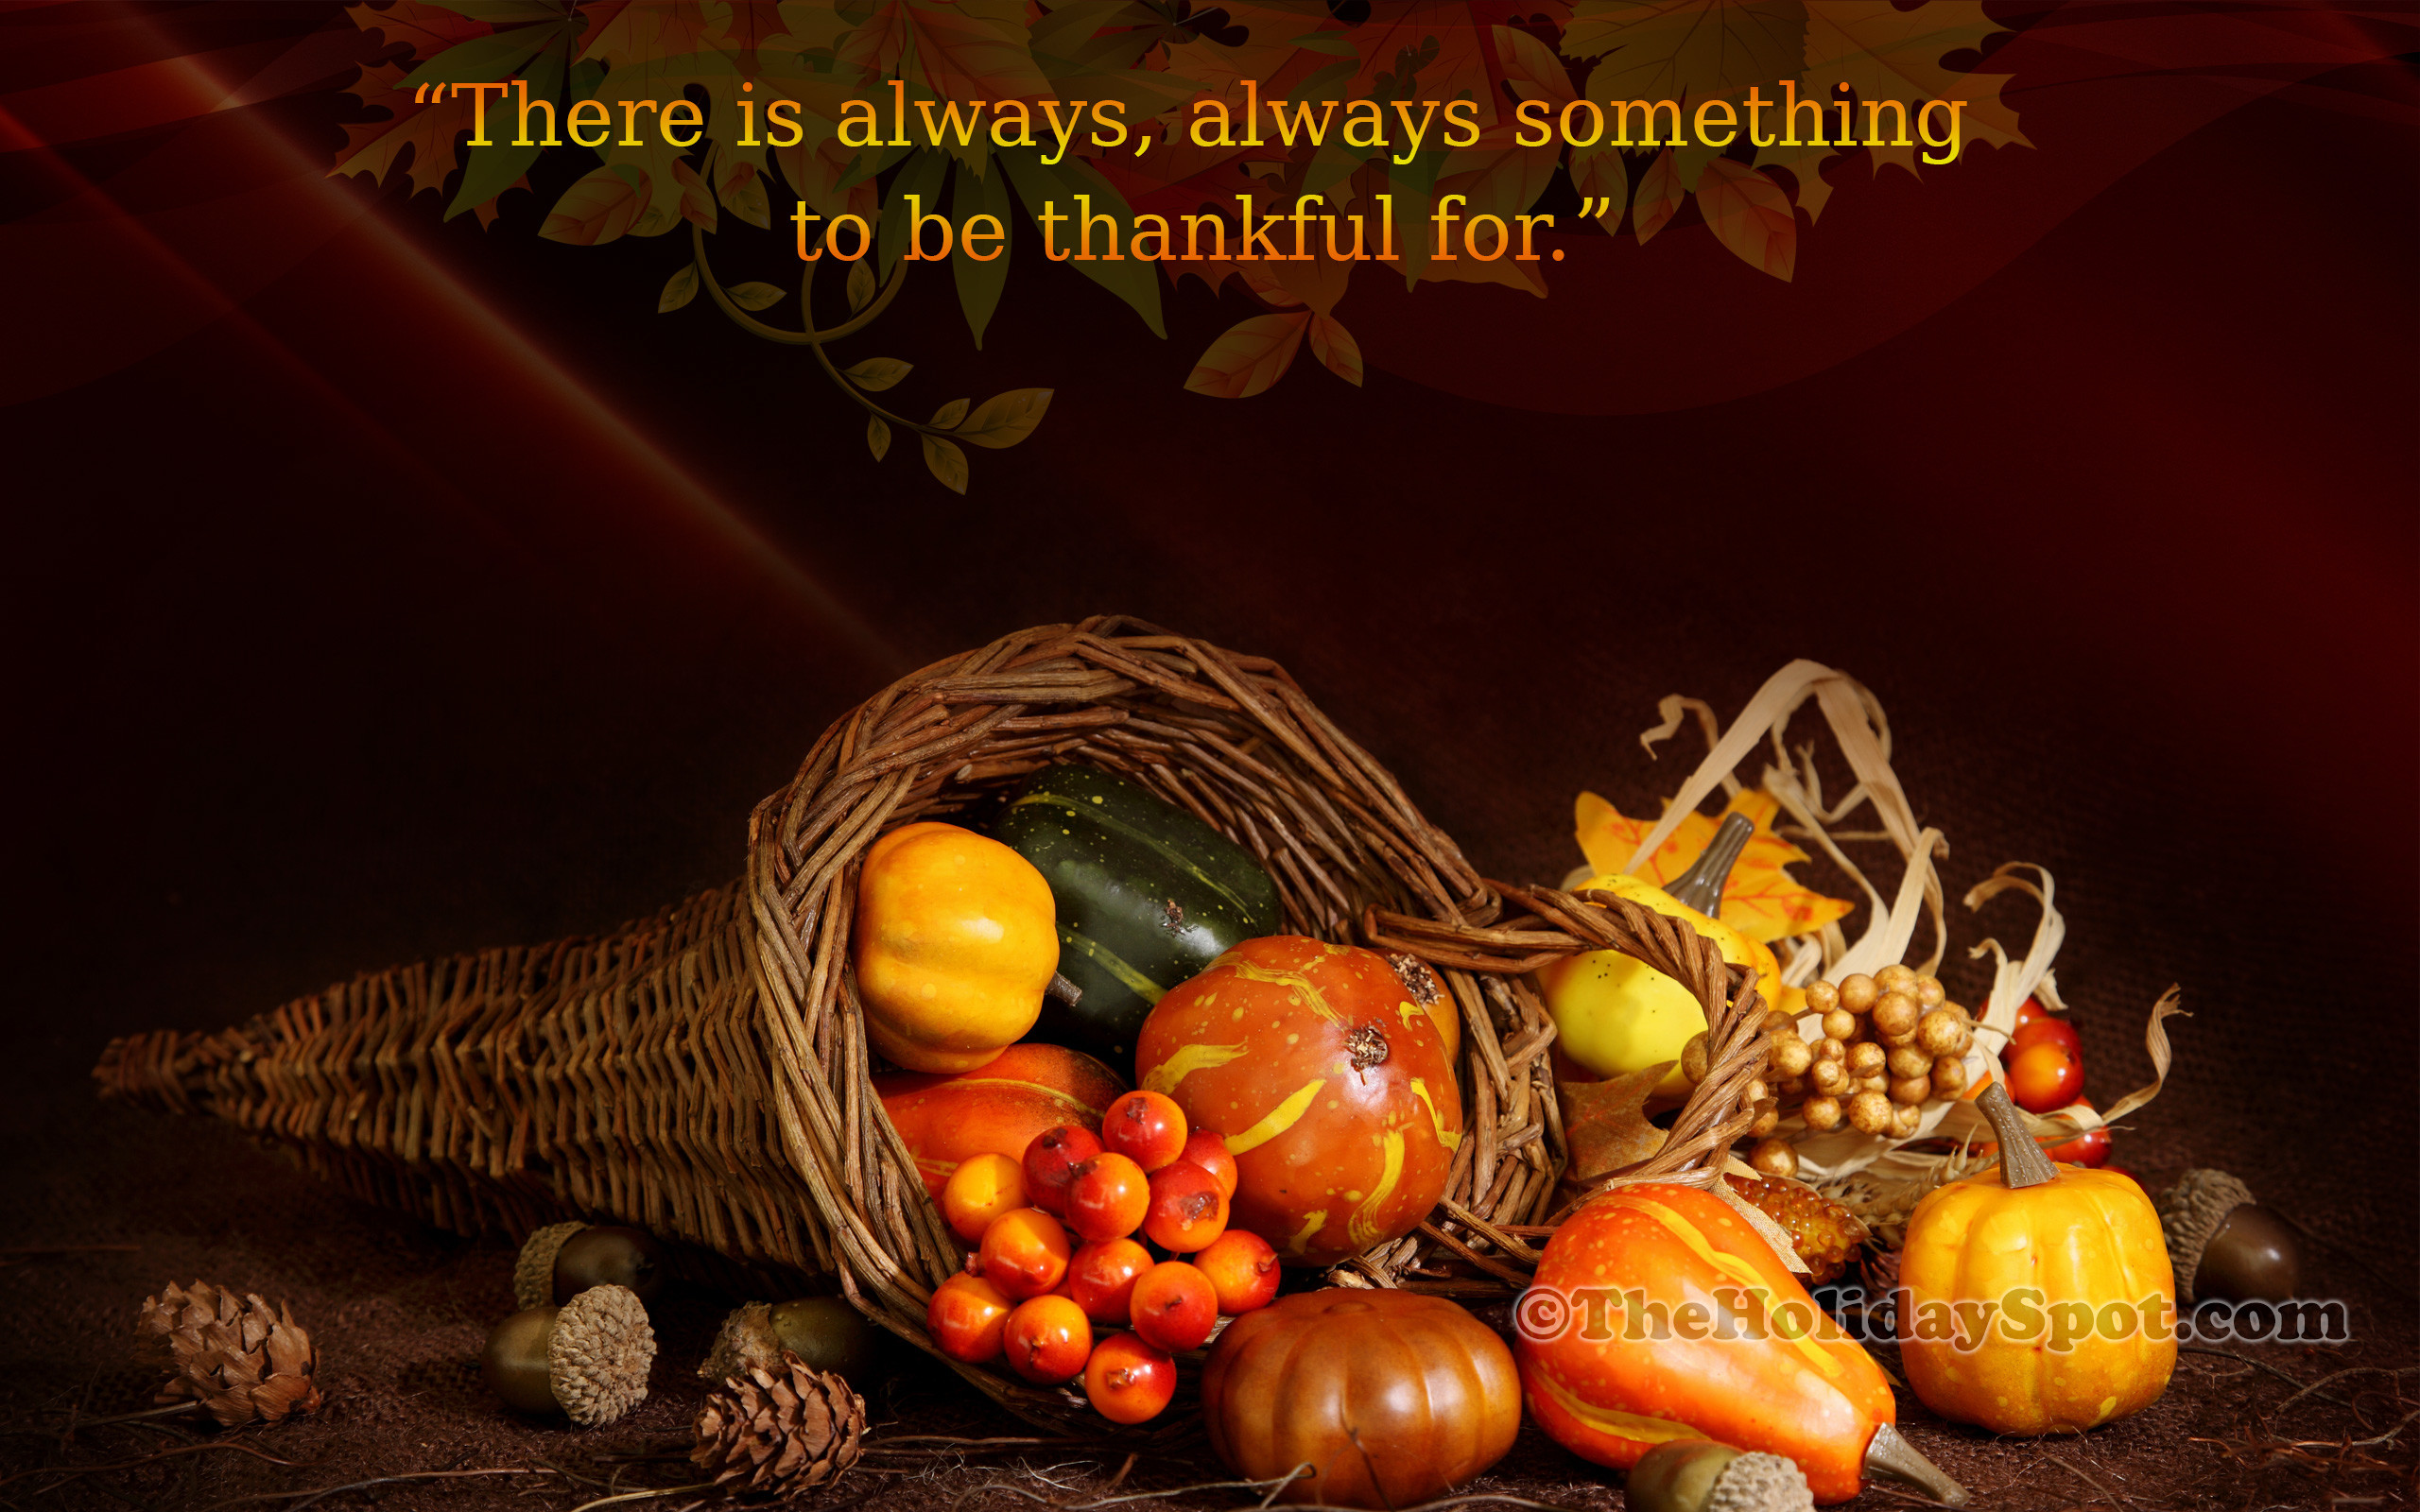 Funny thanksgiving backgrounds 62 images - Thanksgiving wallpaper backgrounds ...